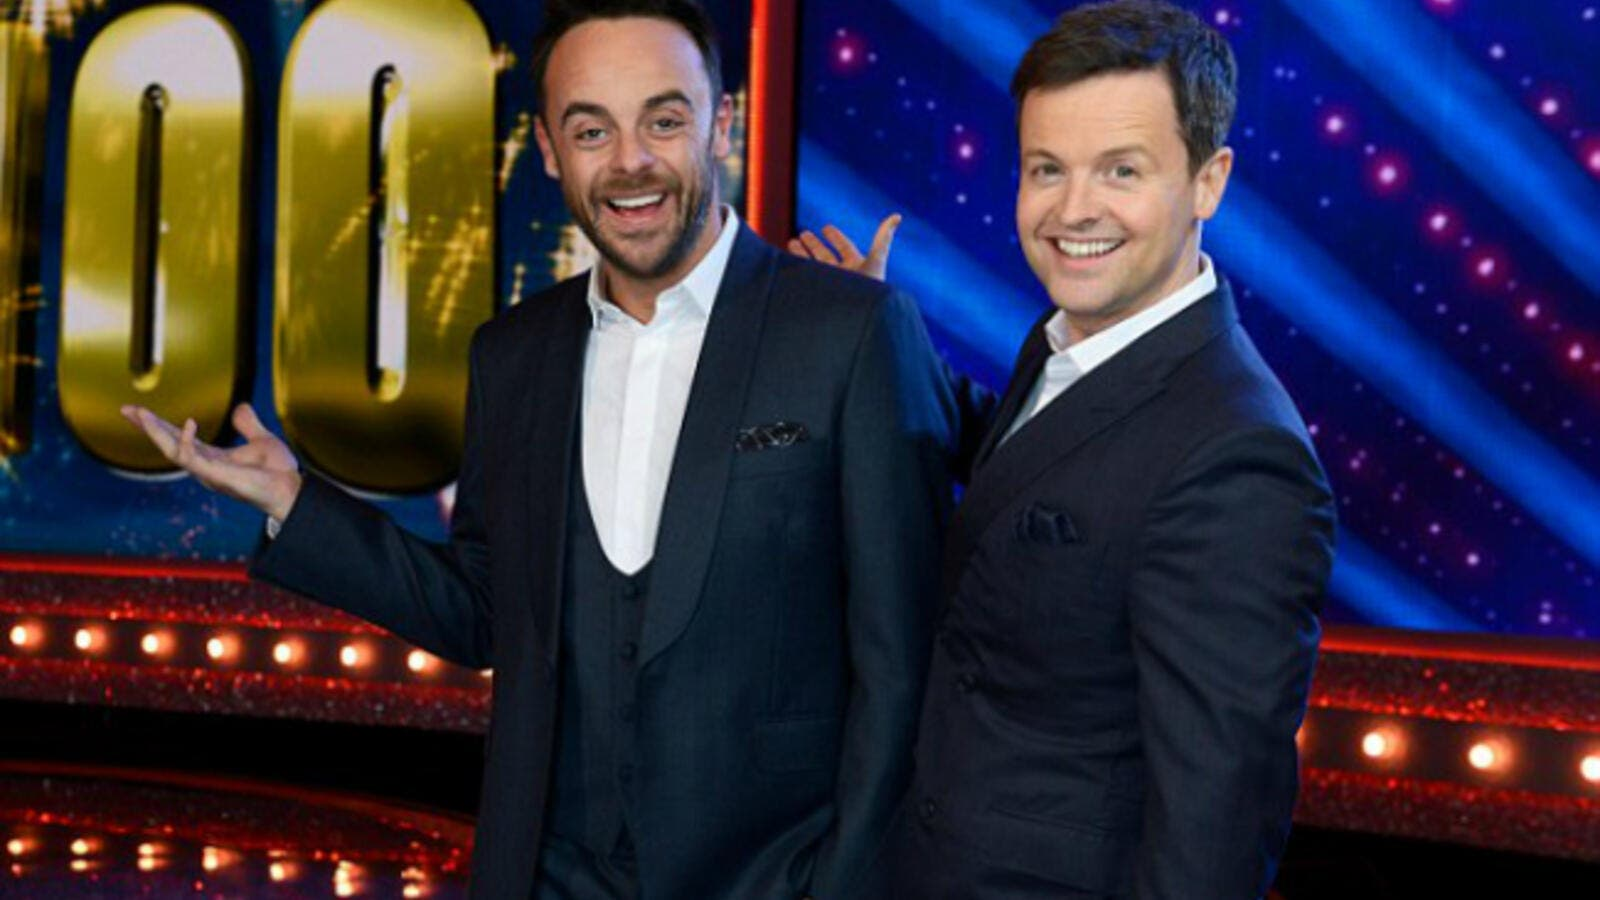 Support: Ant McPartlin reportedly gave Declan Donnelly his blessing to host the final two episodes of Saturday Night Takeaway, as the embattled presenter heads to rehab hours after he was charged for drink-driving (Source: ITV - REX - Shutterstock)